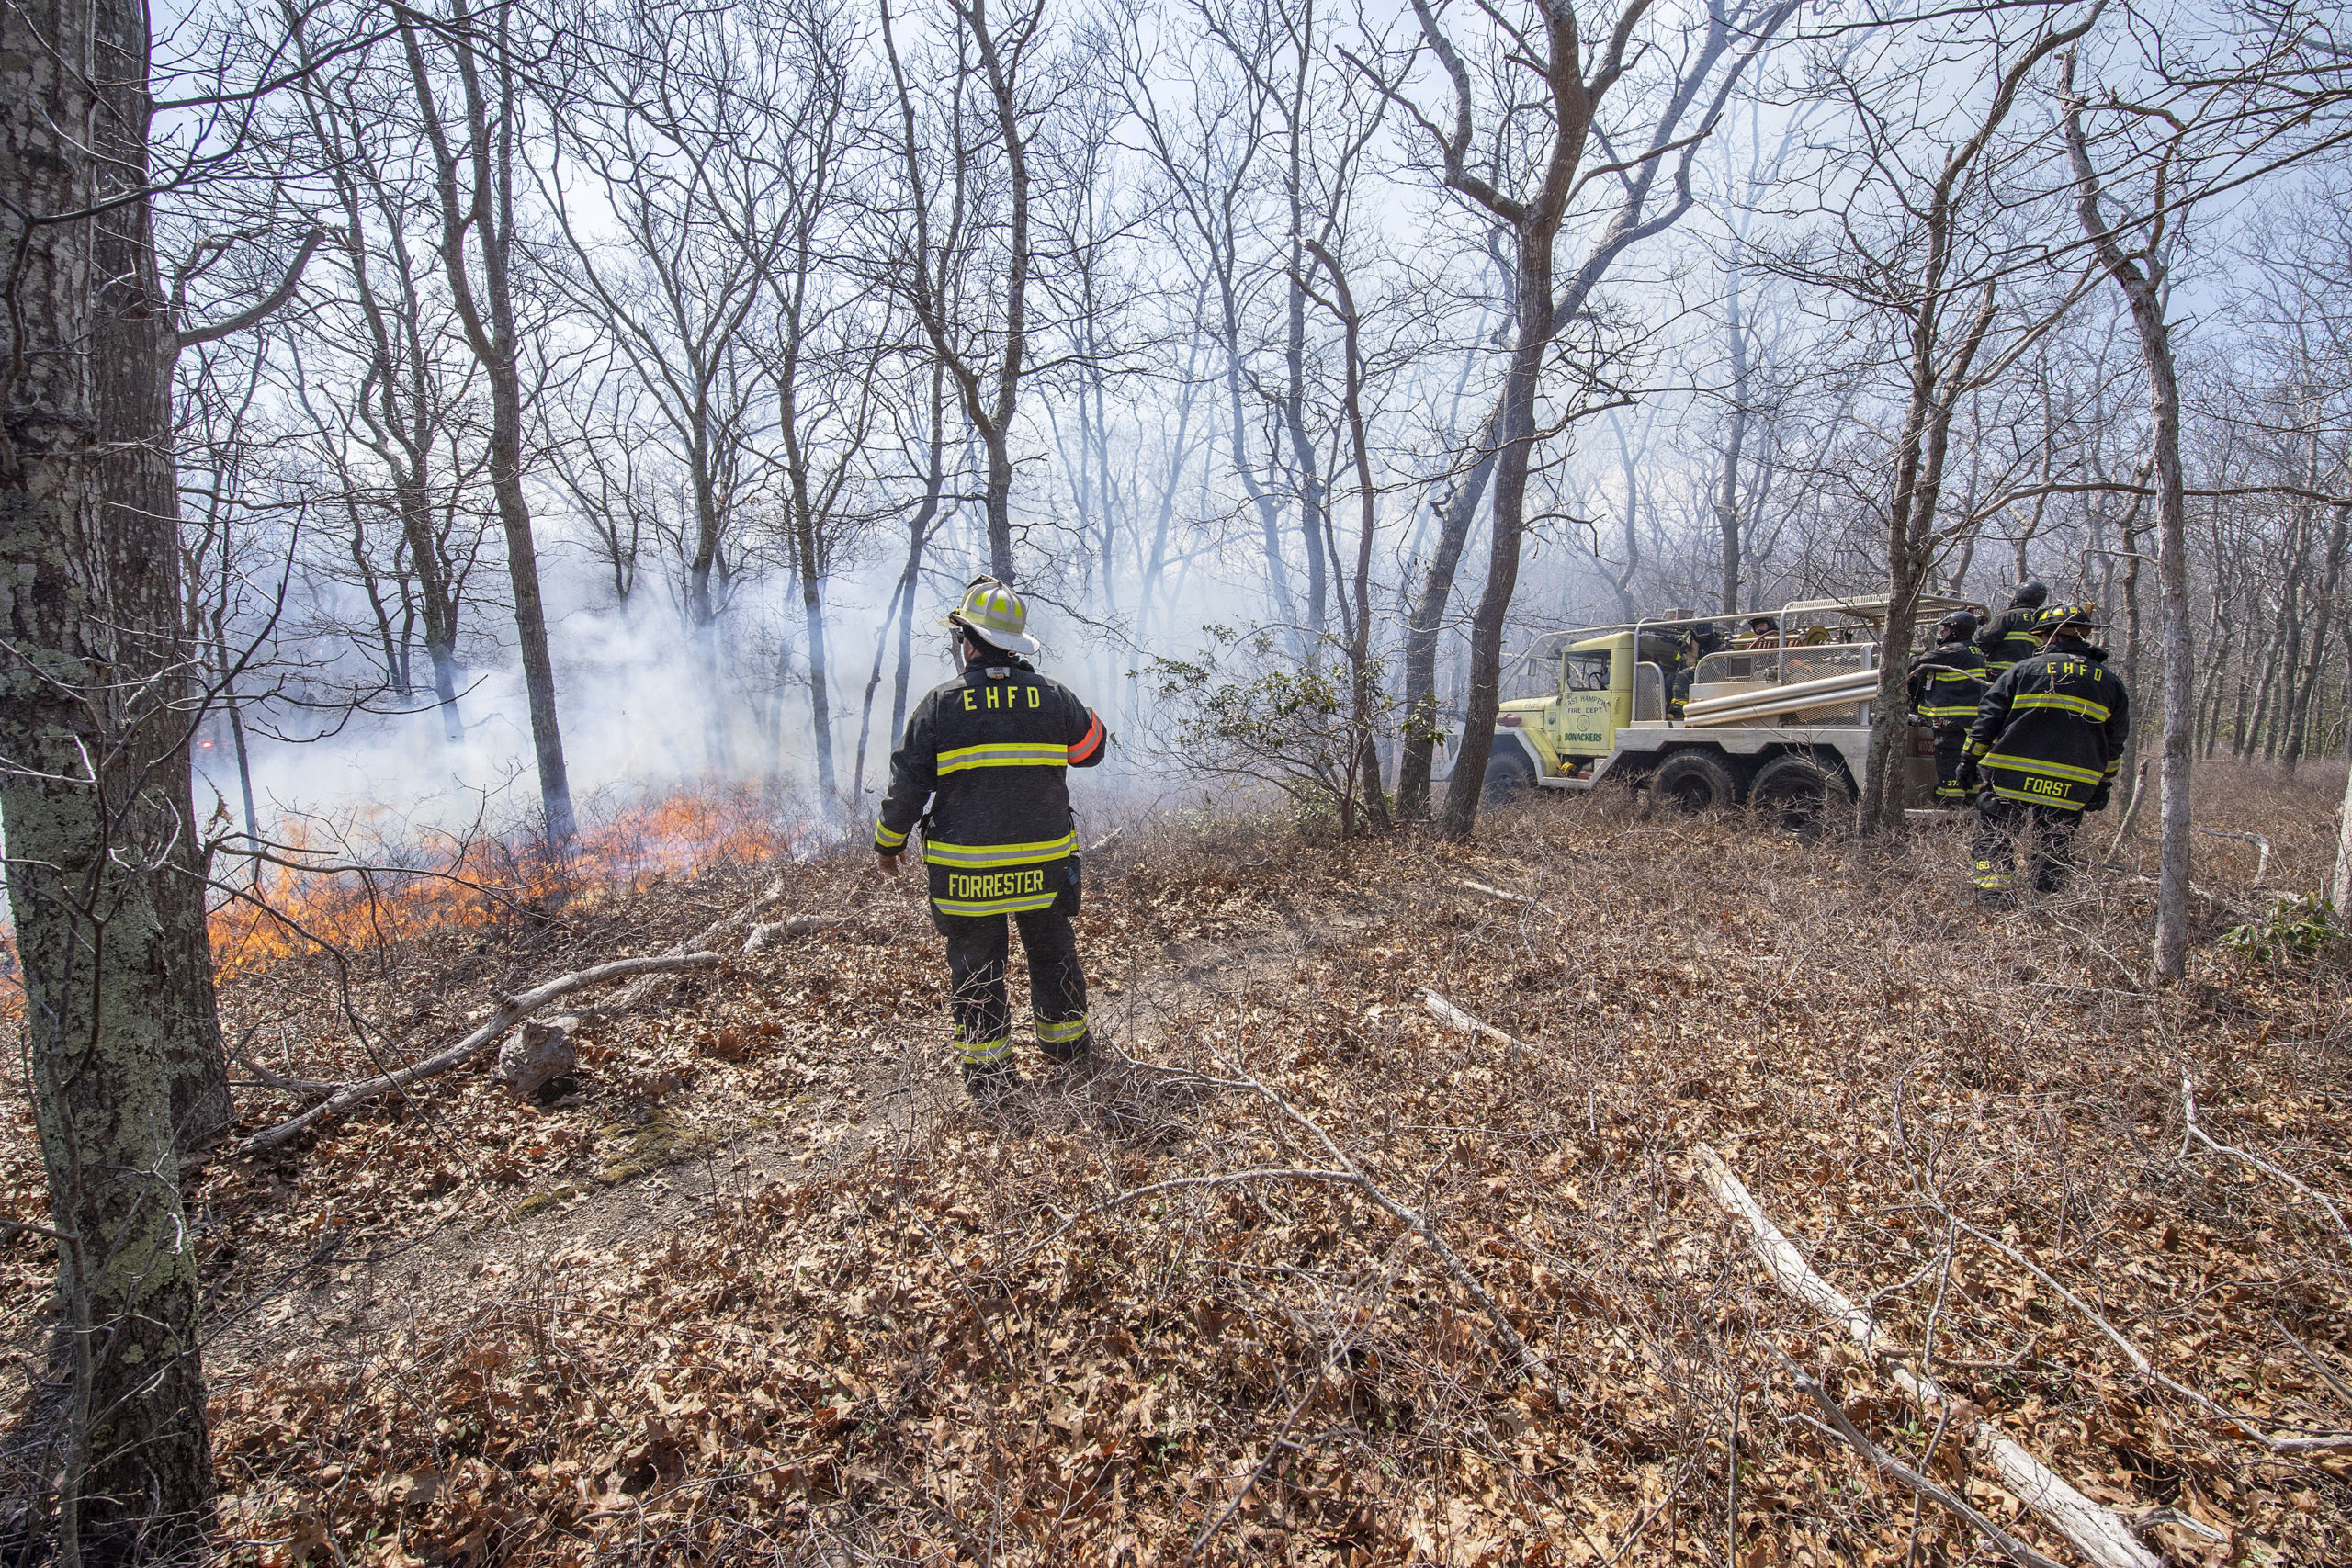 Fighting the brush fire.